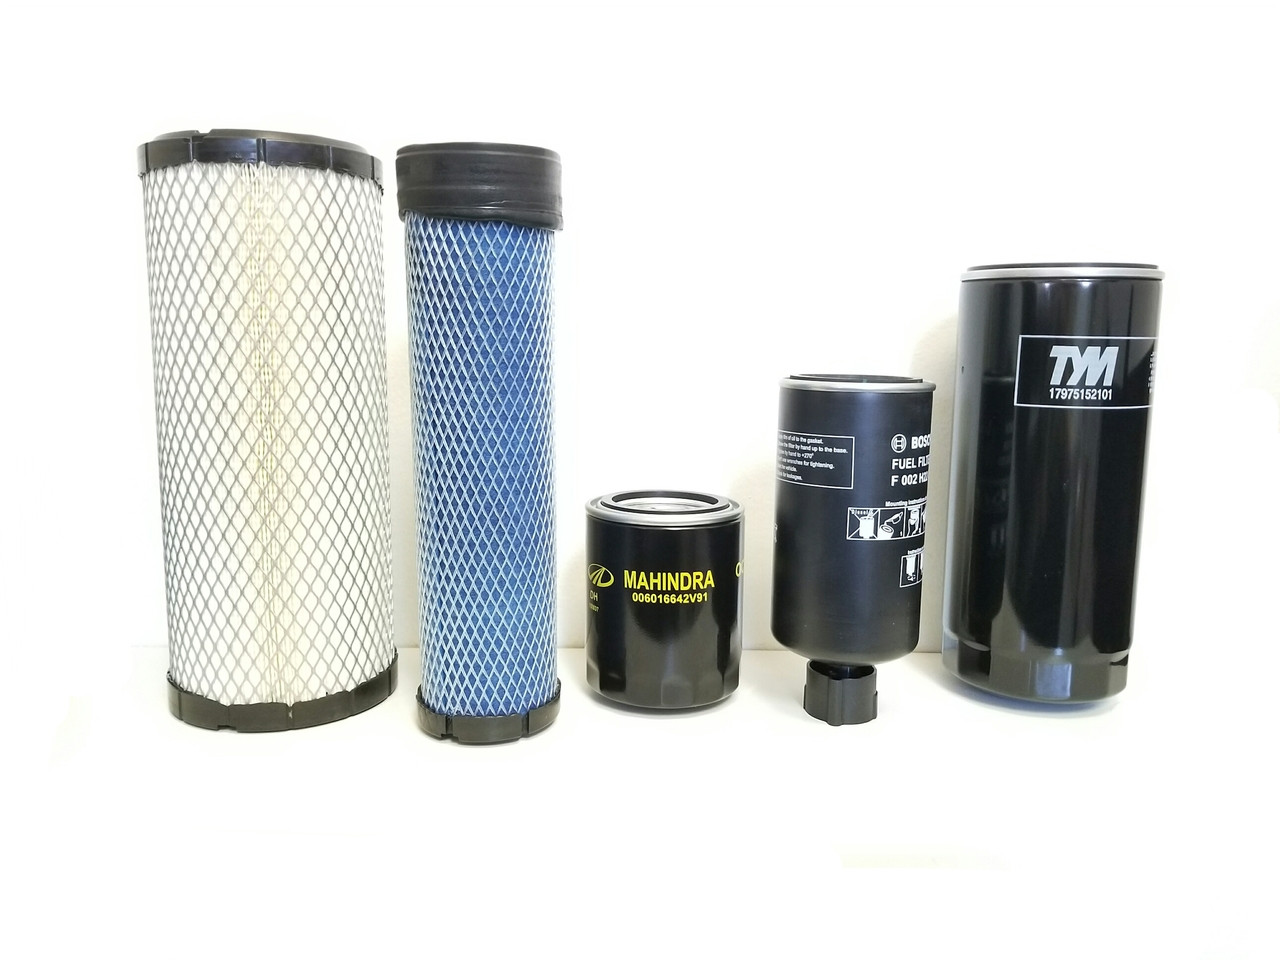 MAHINDRA 2565 FILTER PACK OF FIVE FILTERS